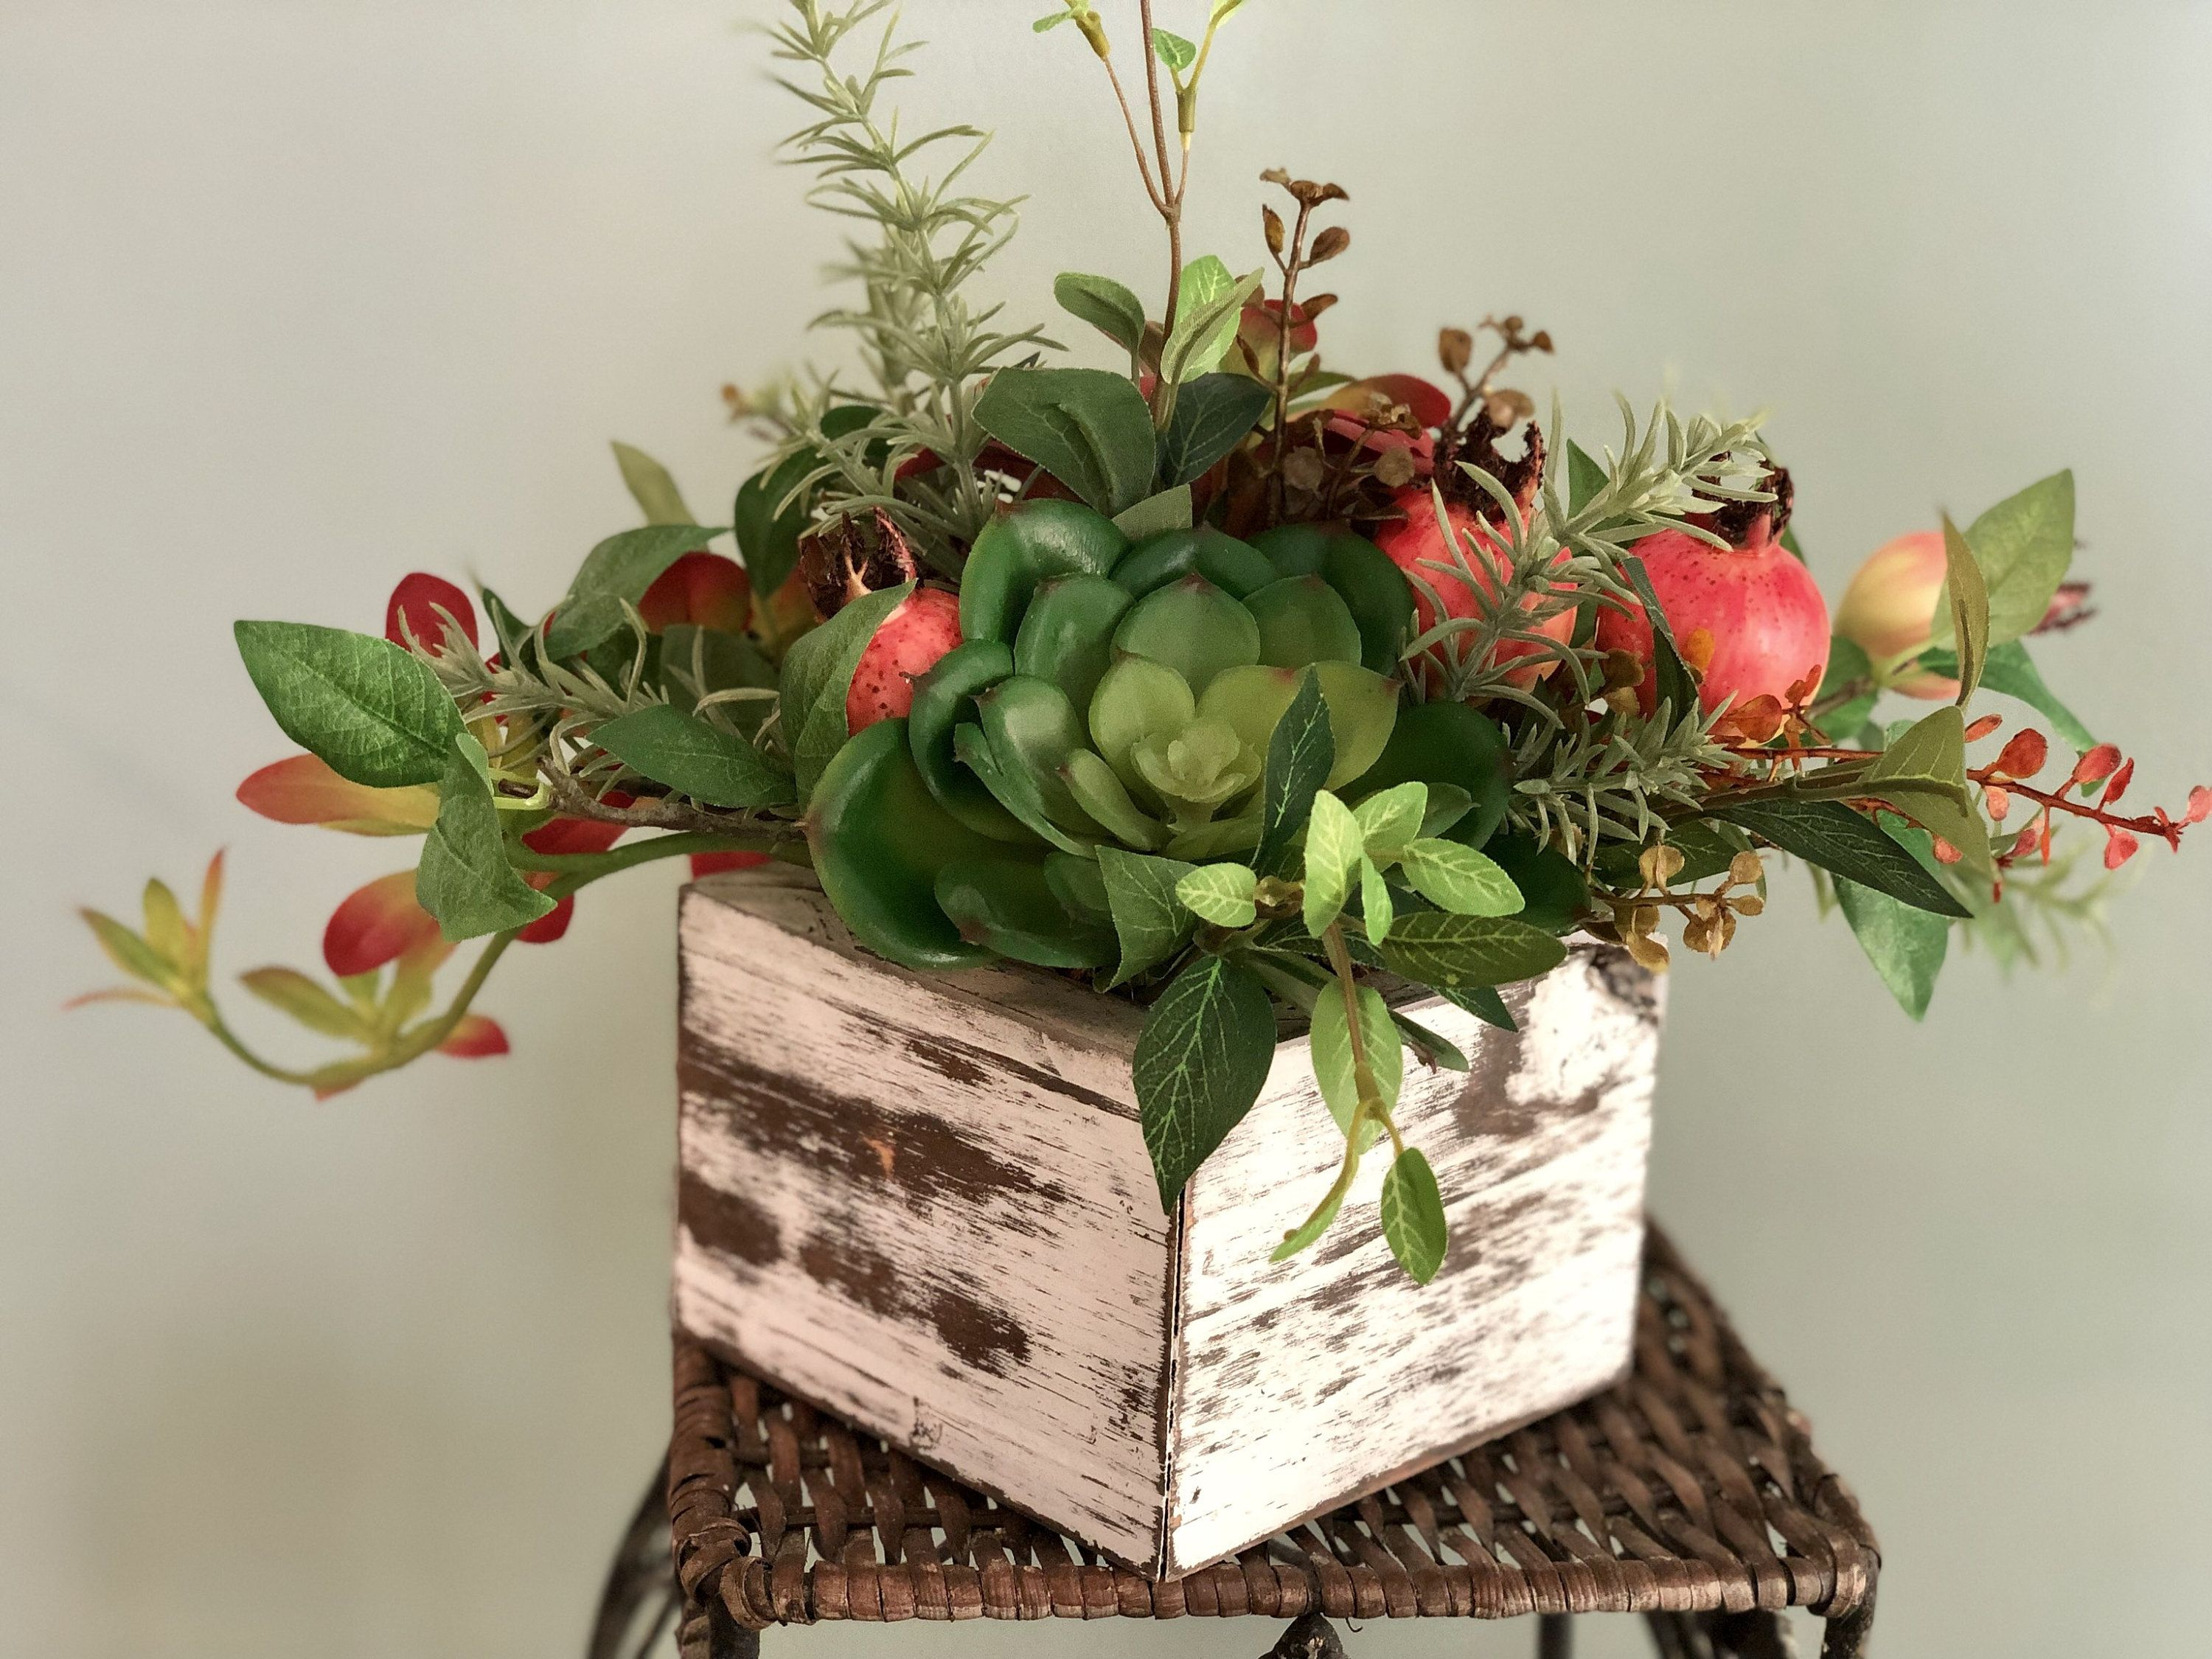 The Mary Succulent Centerpiece For Coffee Table Rustic Centerpiece Small Kitchen Table Ar Succulent Centerpieces Succulent Wreath Diy Coffee Table Centerpieces